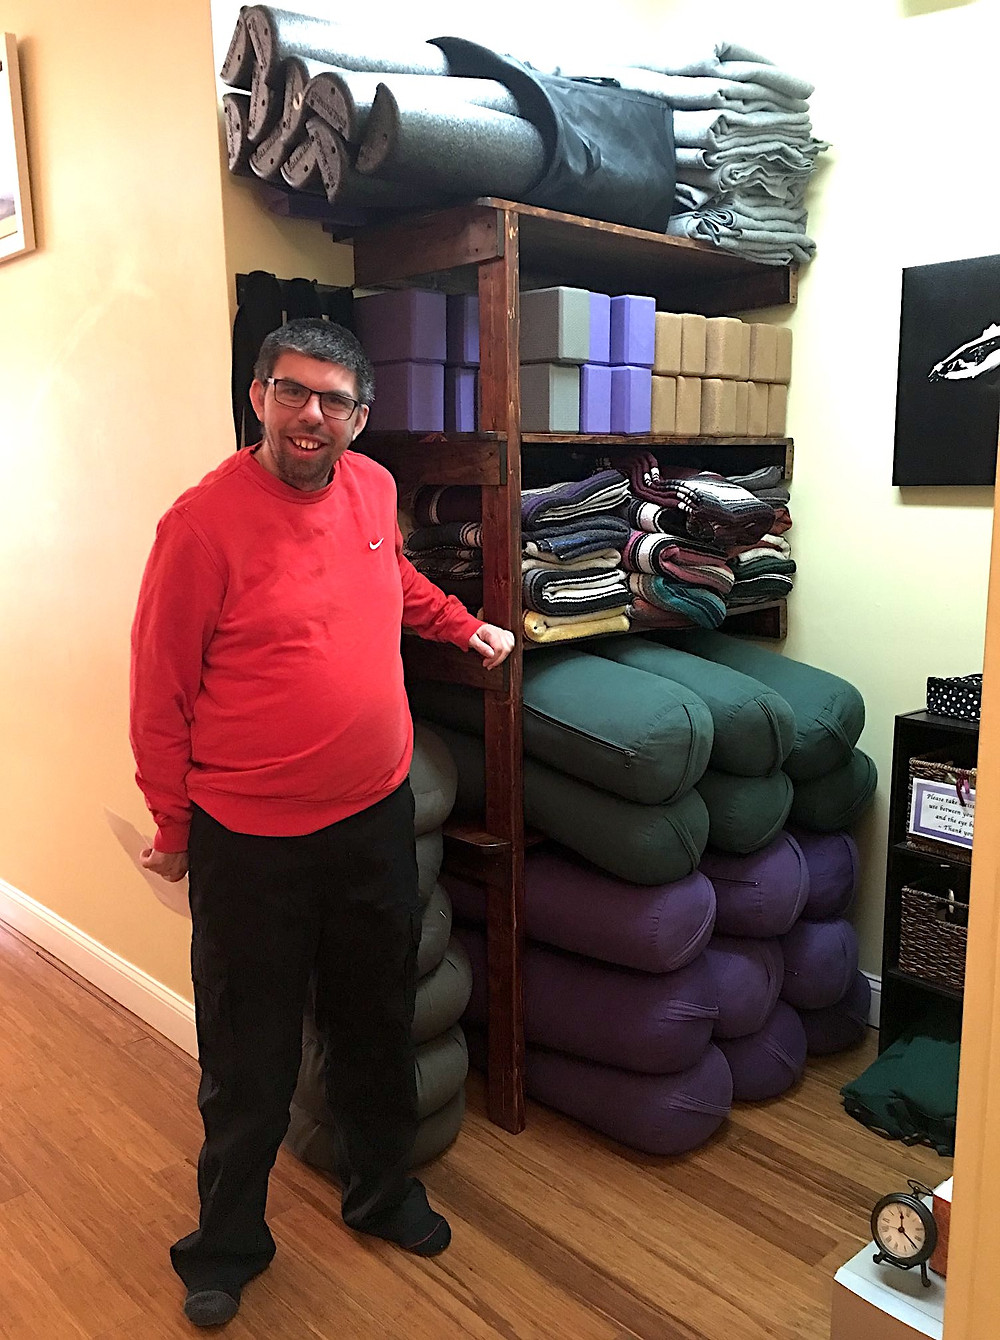 Photo of Joey Gagnon, wearing a red sweatshirt and black pants, posing in front of an organized shelf with bolsters, mats, and other yoga supplies.